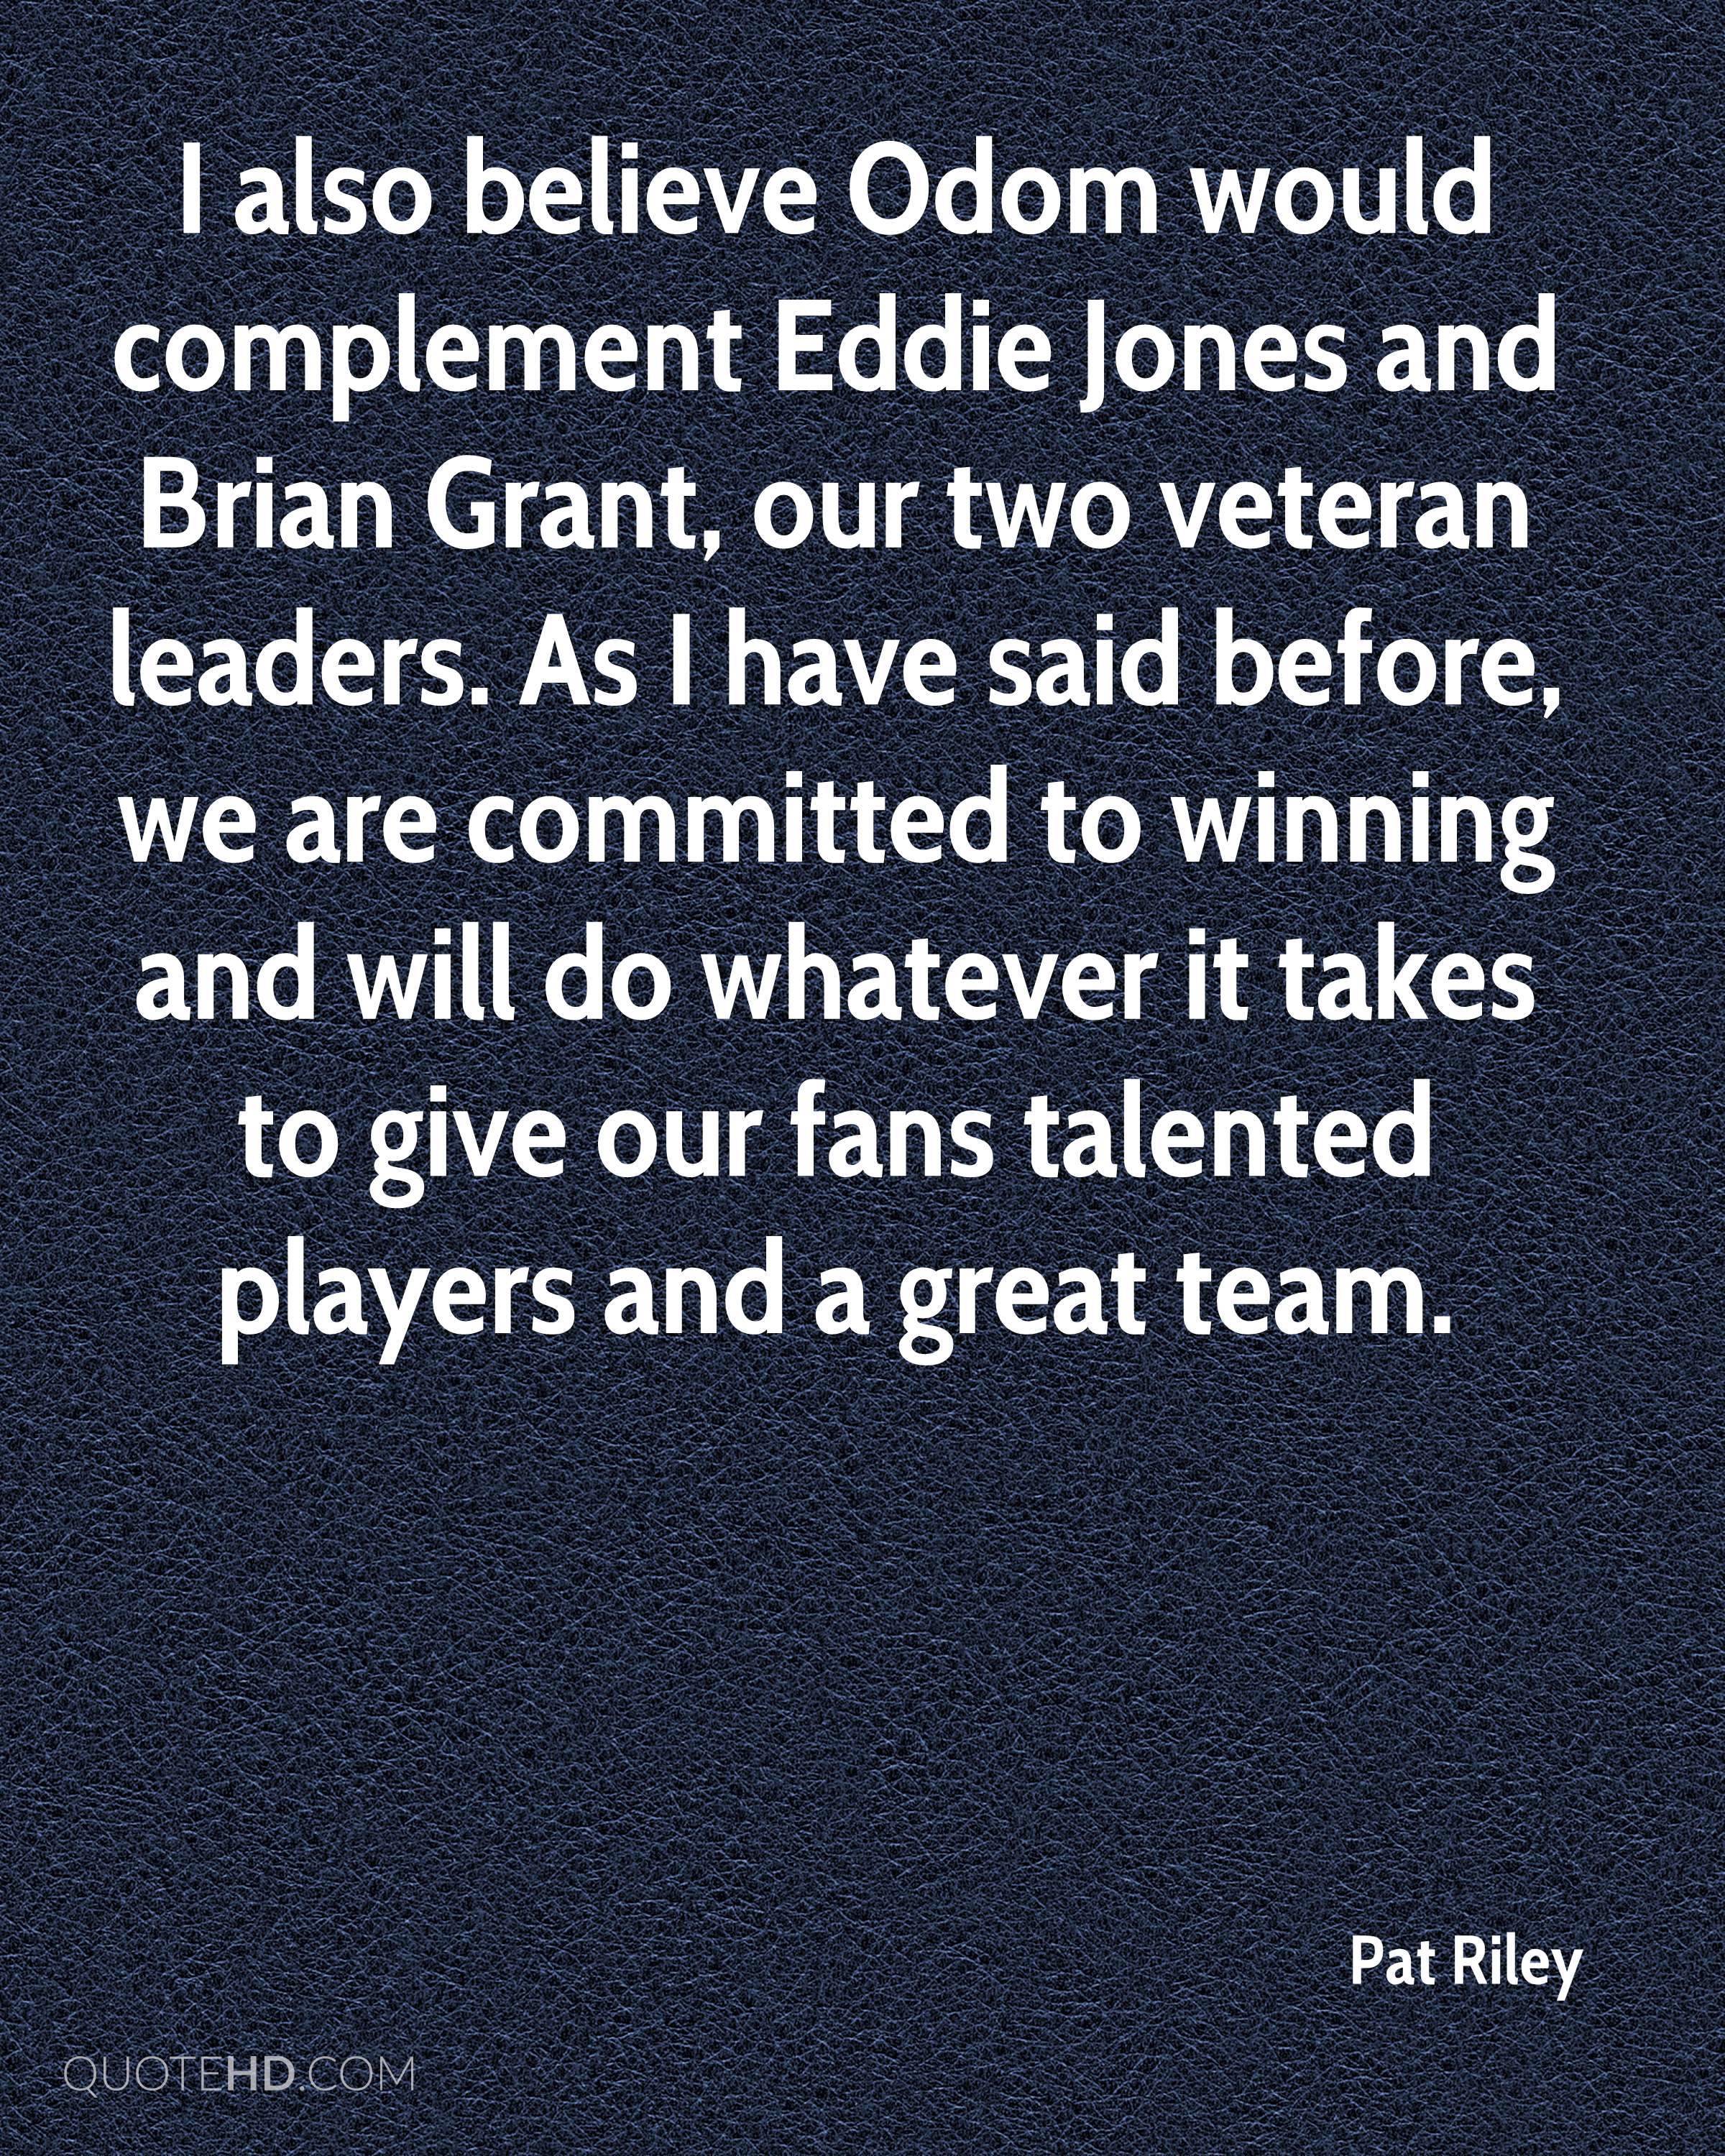 I also believe Odom would complement Eddie Jones and Brian Grant, our two veteran leaders. As I have said before, we are committed to winning and will do whatever it takes to give our fans talented players and a great team.